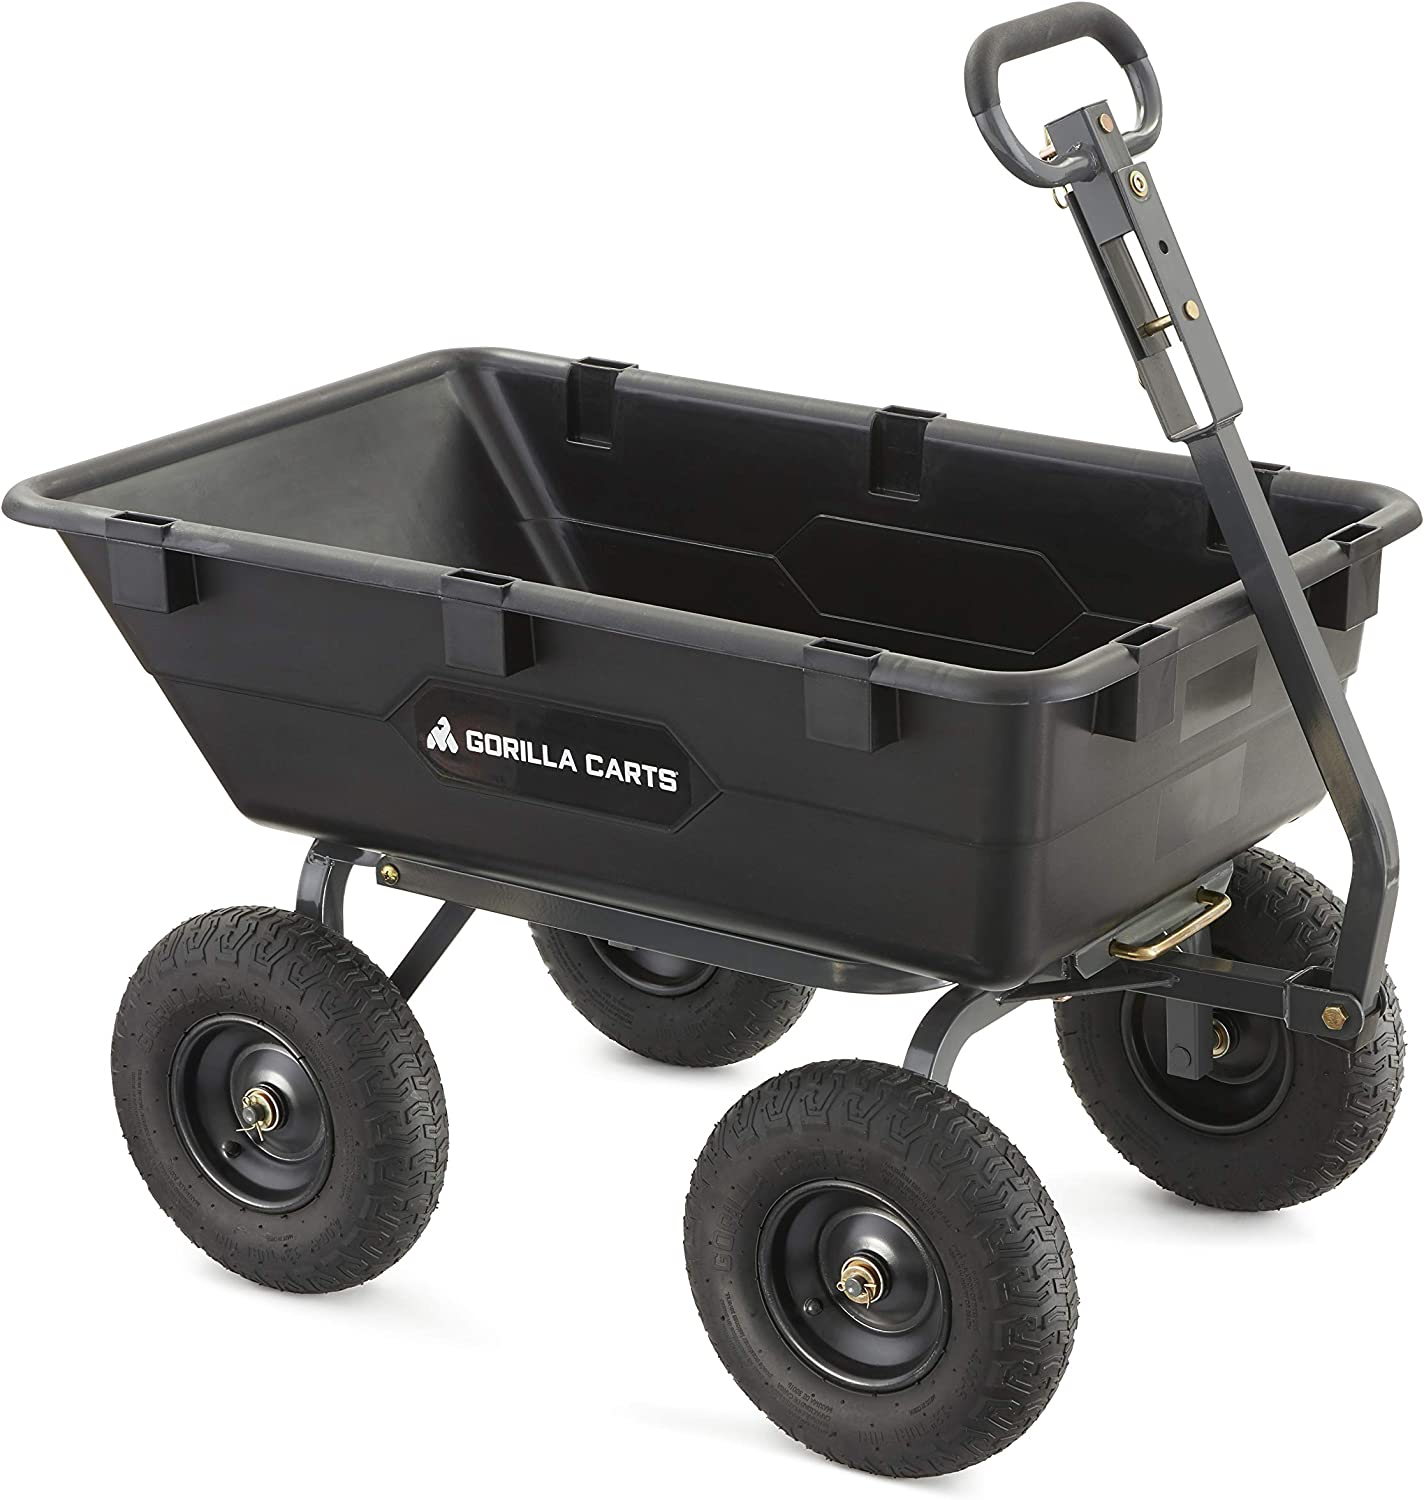 OFFicial Gorilla Carts Heavy-Duty Poly Yard Selling Convertibl 2-In-1 Dump Cart